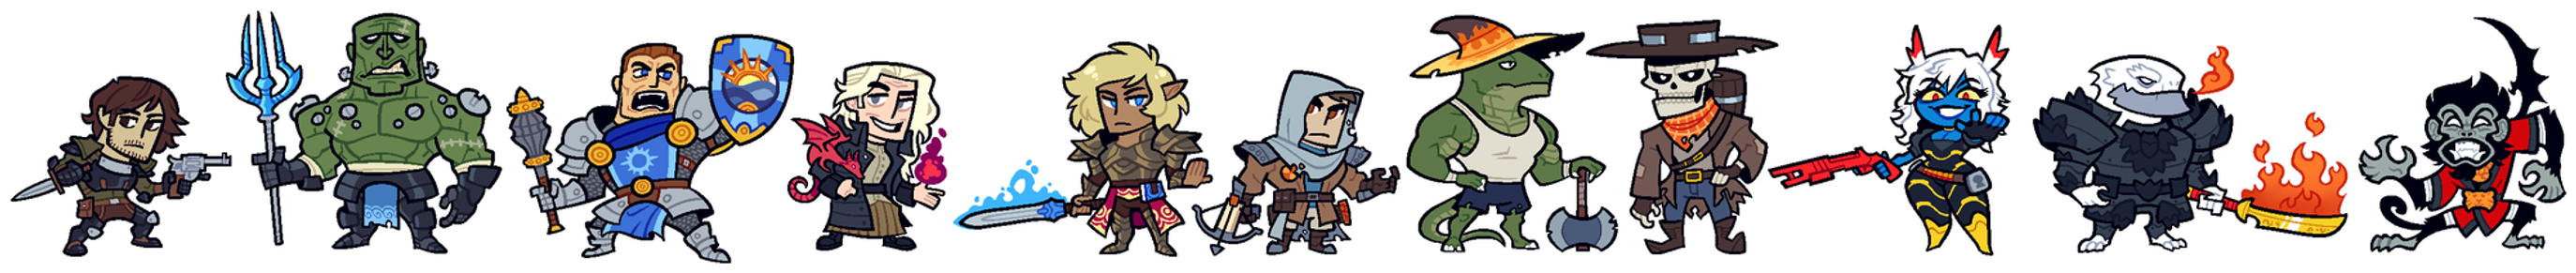 COMMISSION: DnD Group 11 by Cubesona